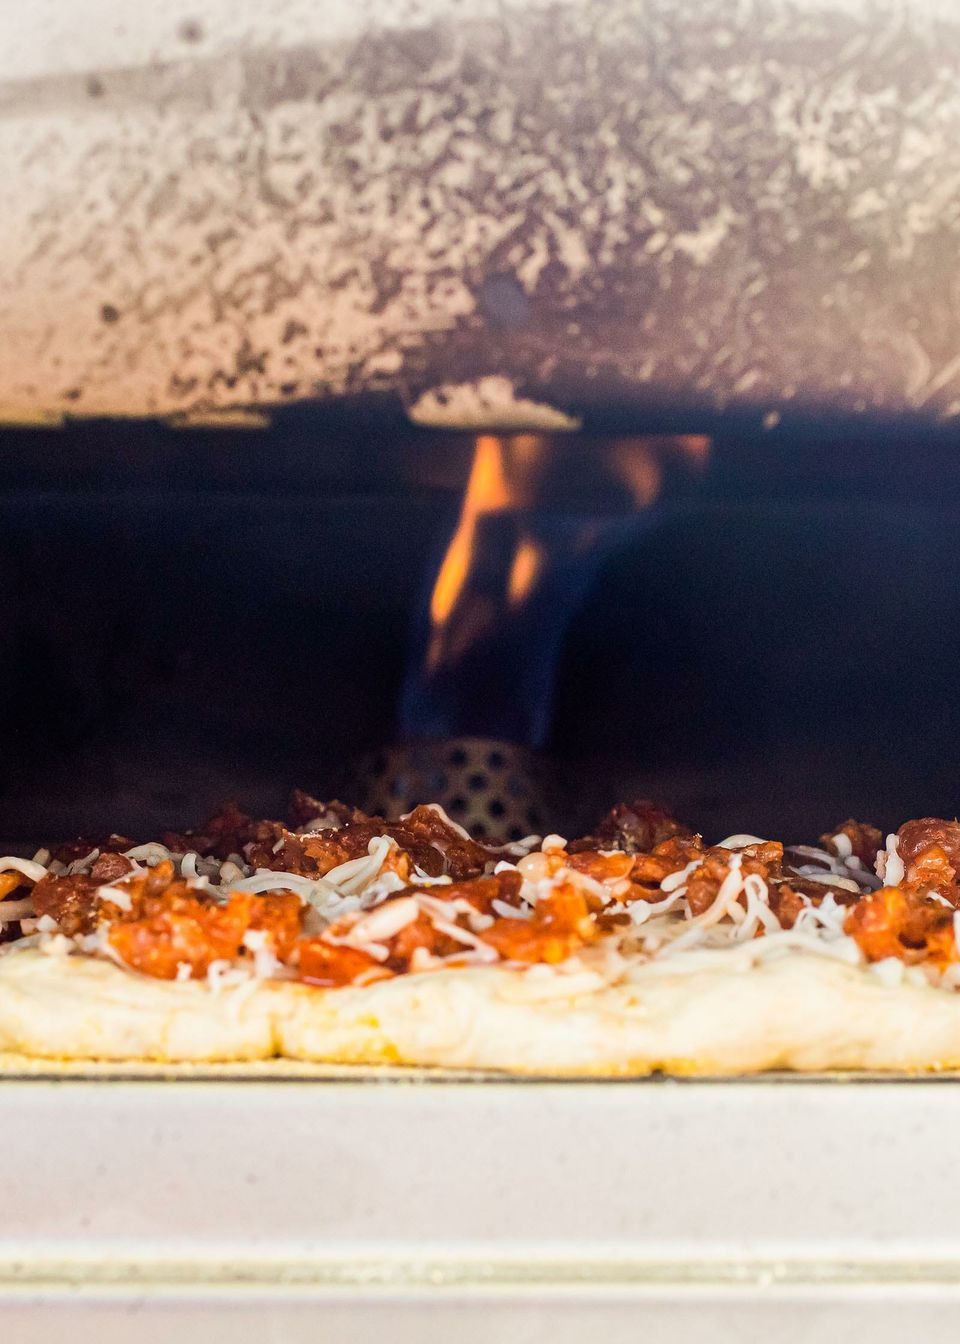 What is the Roccbox? This photo shows a pizza cooking inside with the fire visible.